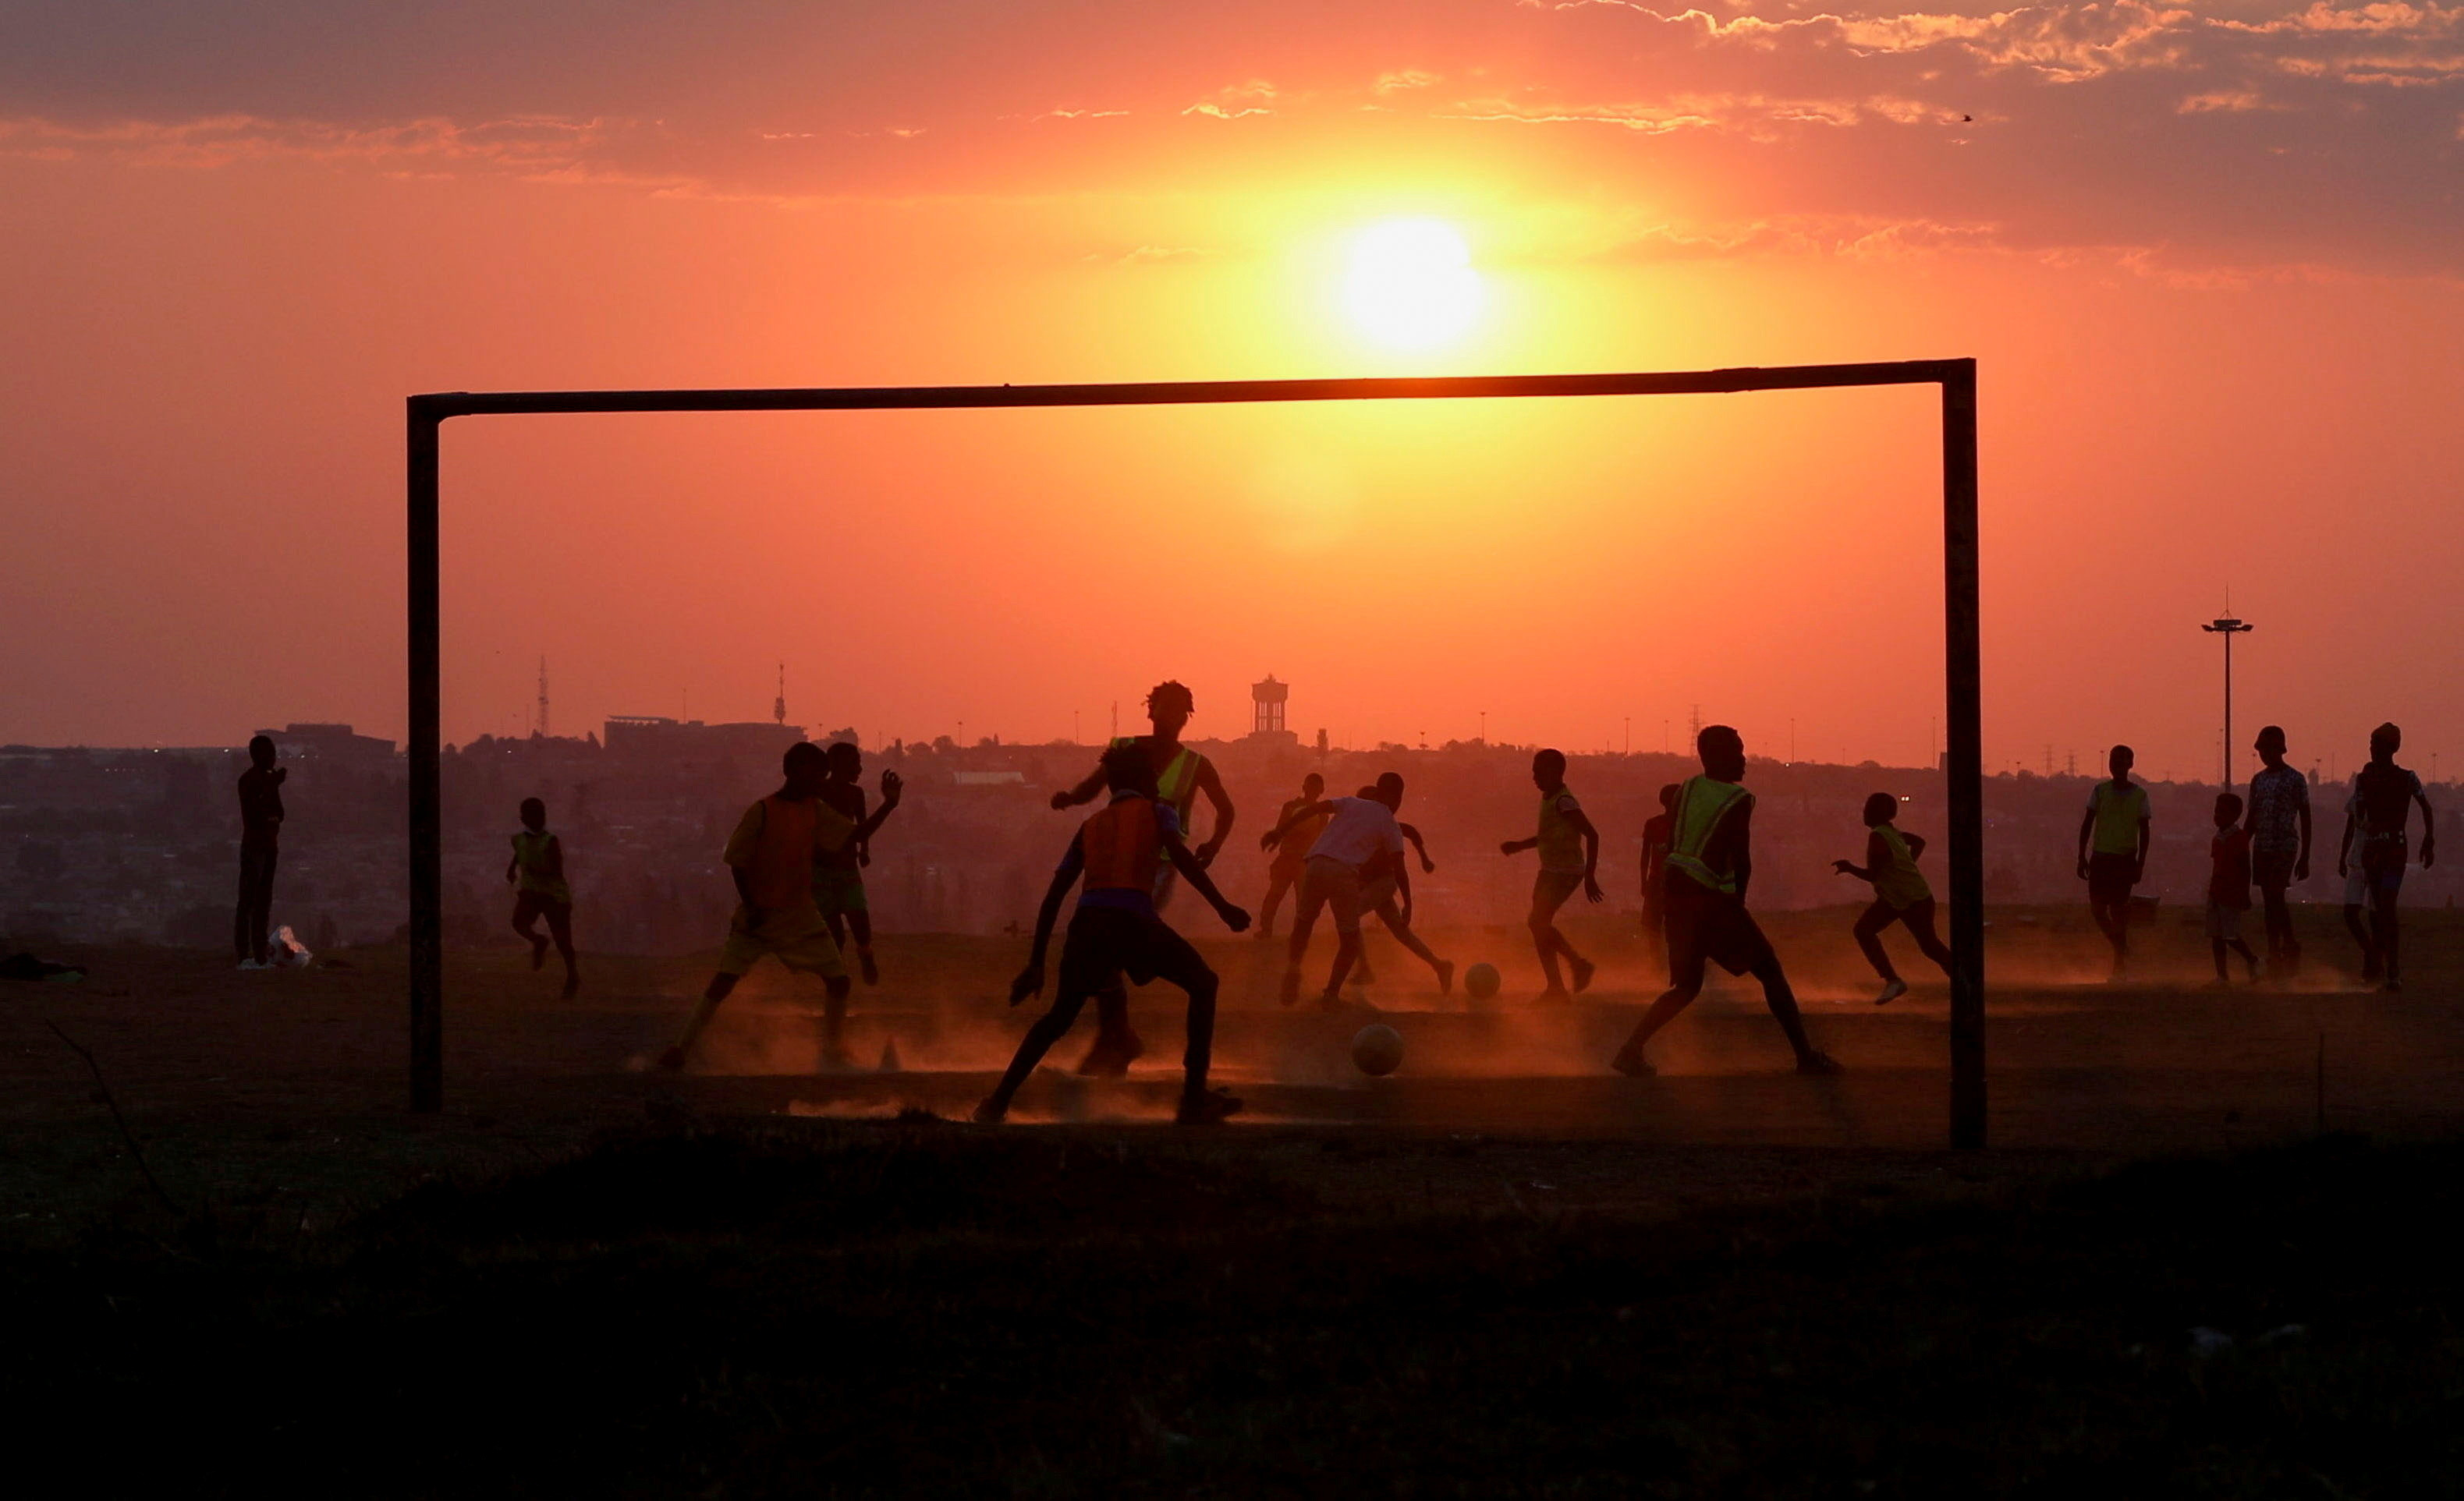 Locals play soccer on a dusty pitch in Soweto, South Africa, September 15, 2021. REUTERS/Siphiwe Sibeko     TPX IMAGES OF THE DAY - RC2GQP98G1B7